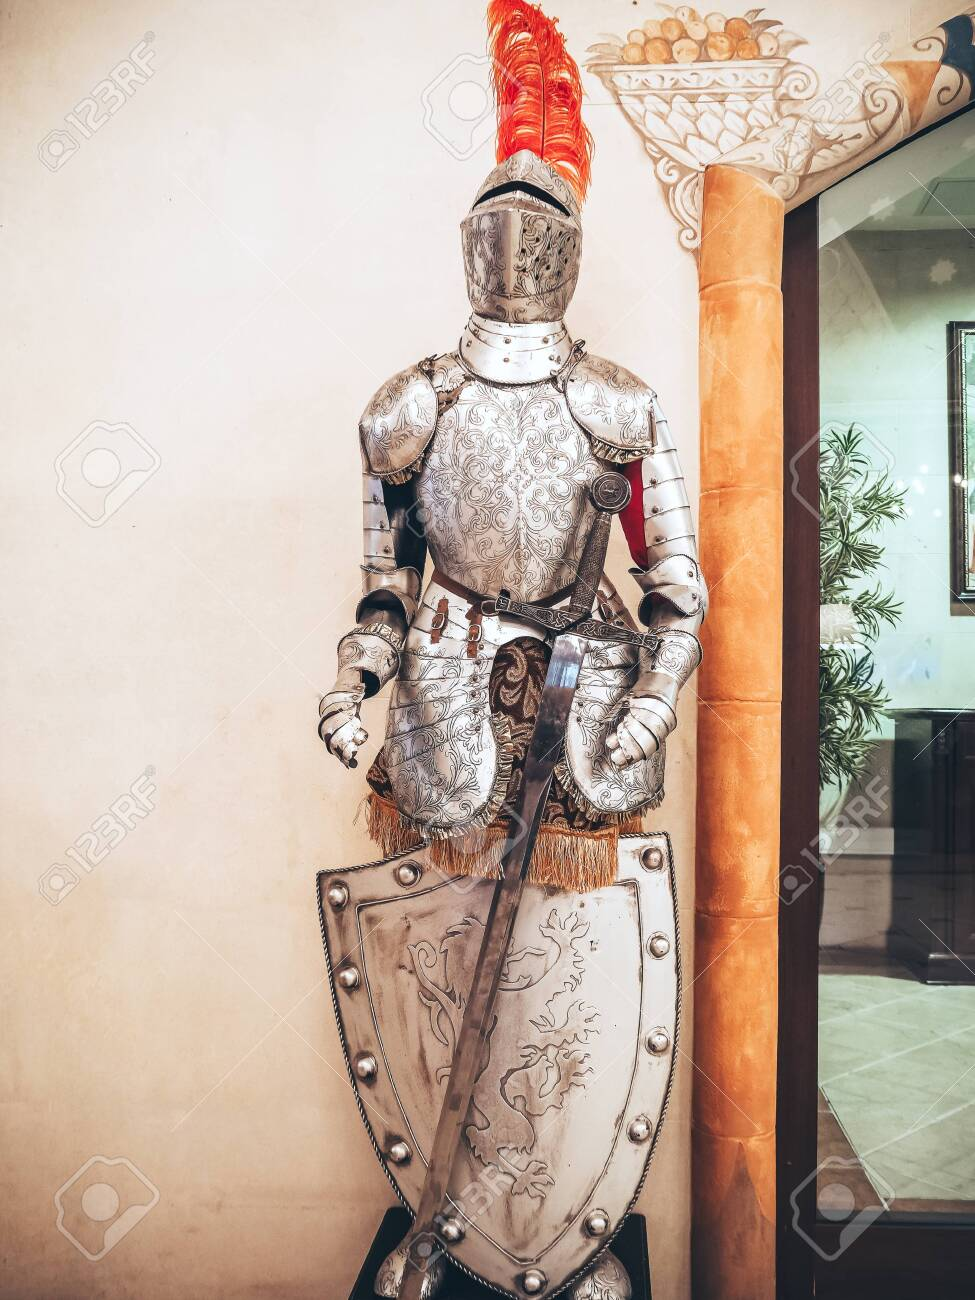 Russia Sochi 14 03 2020 The Figure Of A Medieval Knight In Stock Photo Picture And Royalty Free Image Image 150724656